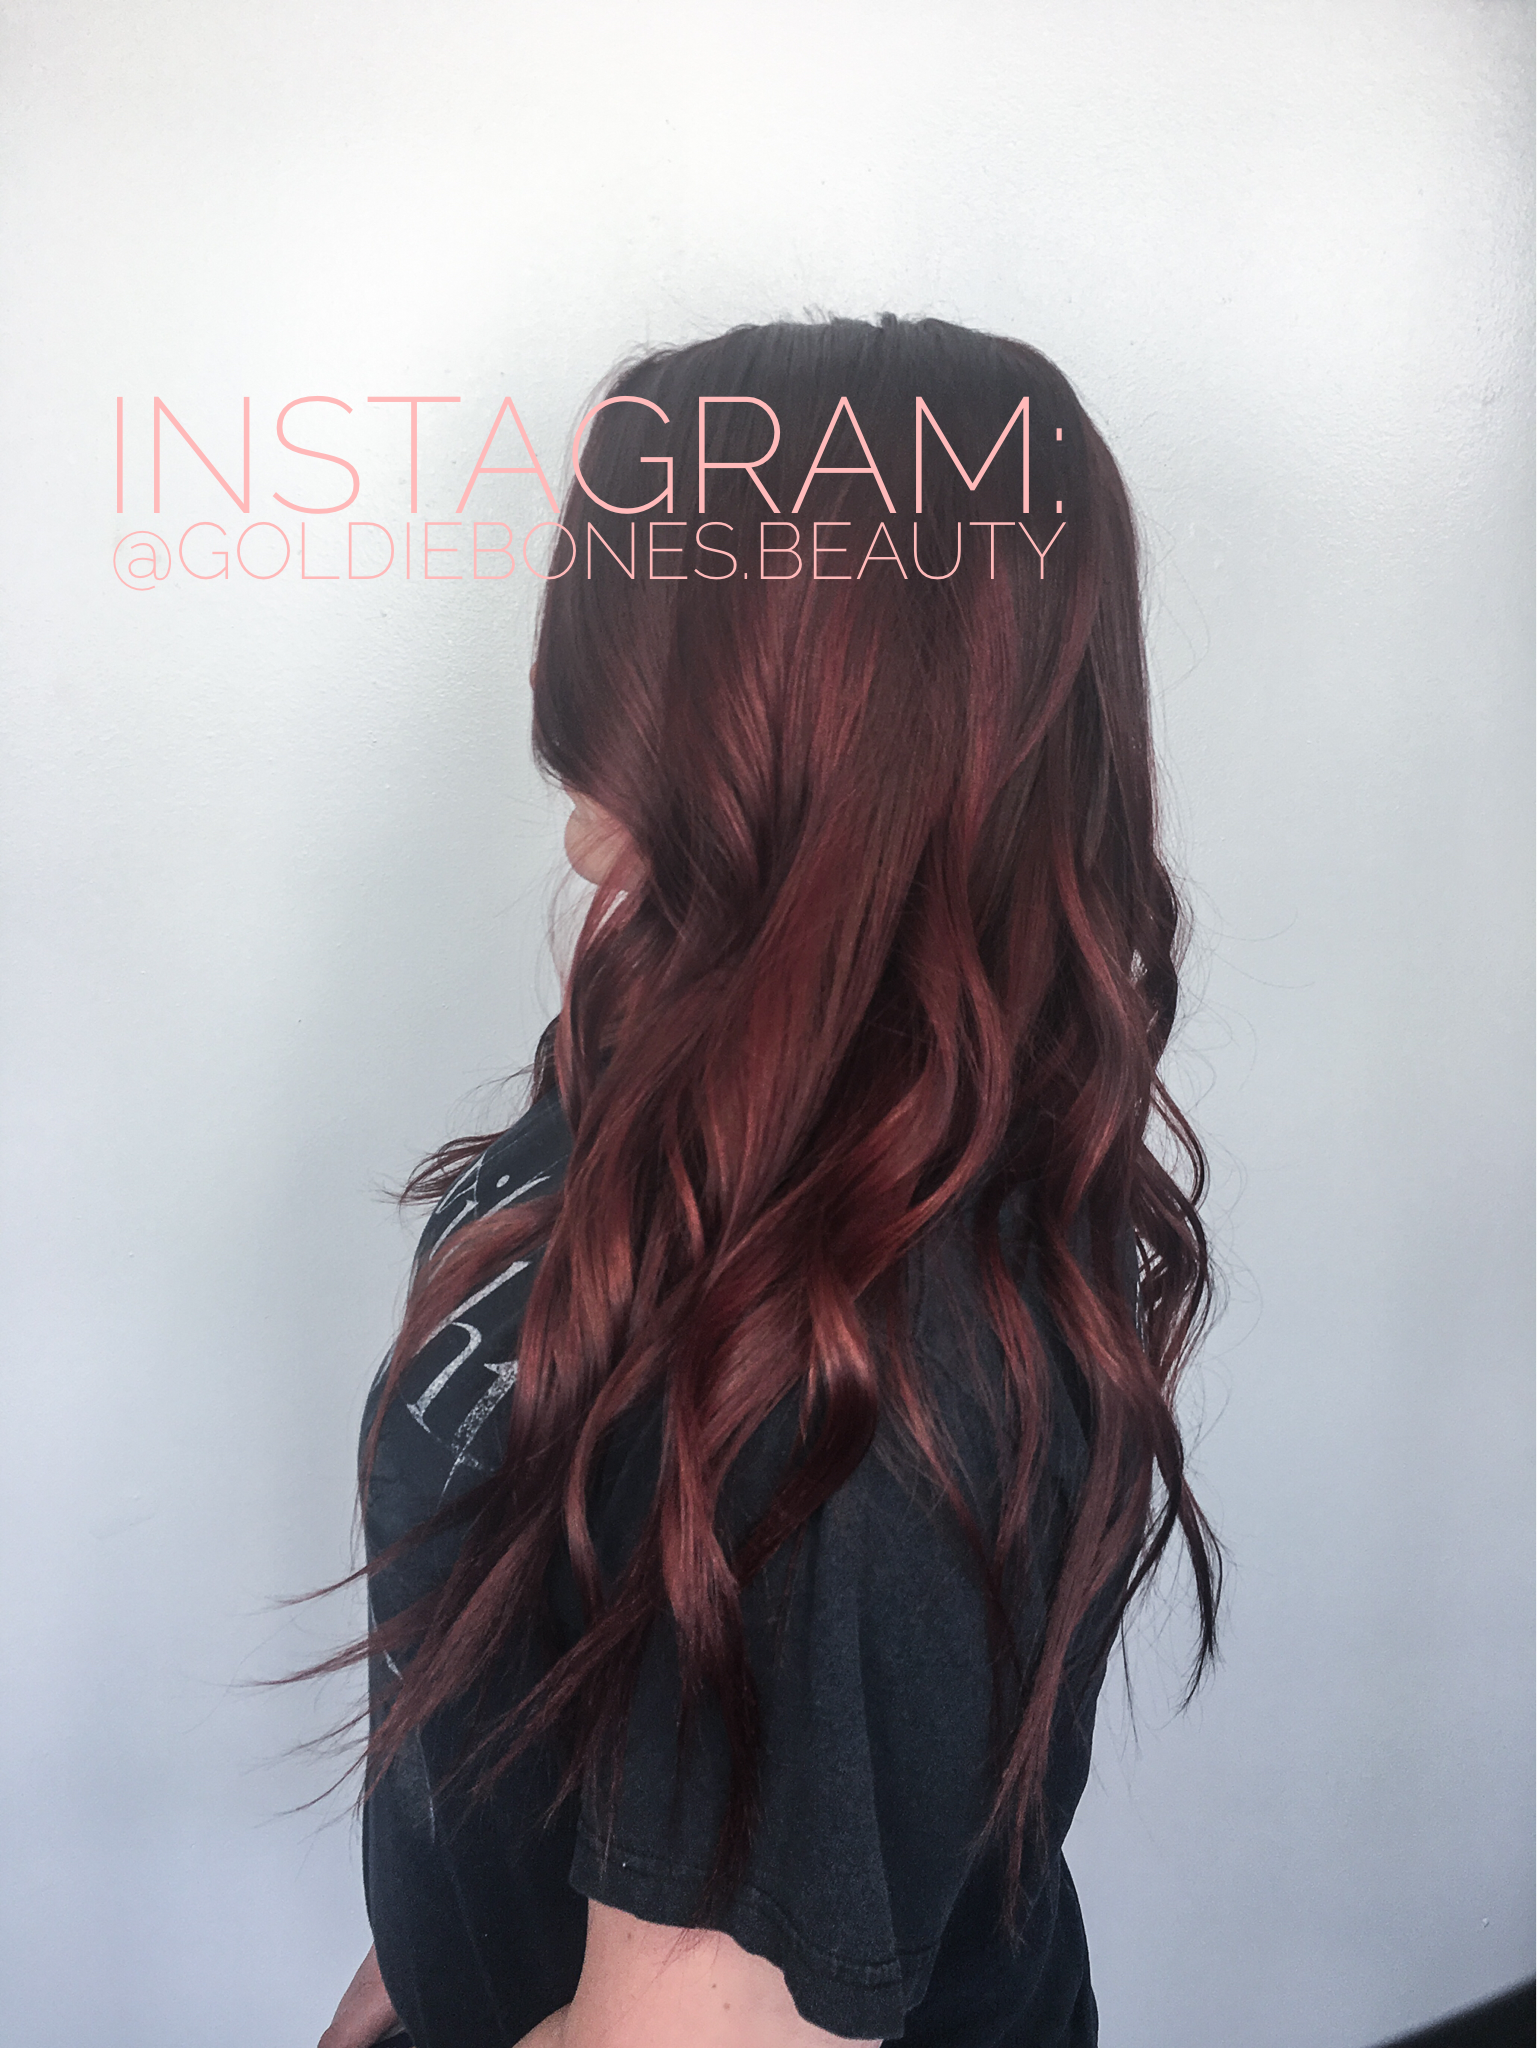 Firecracker Red For Fall We Used Redken Shades Eq 7c On Her